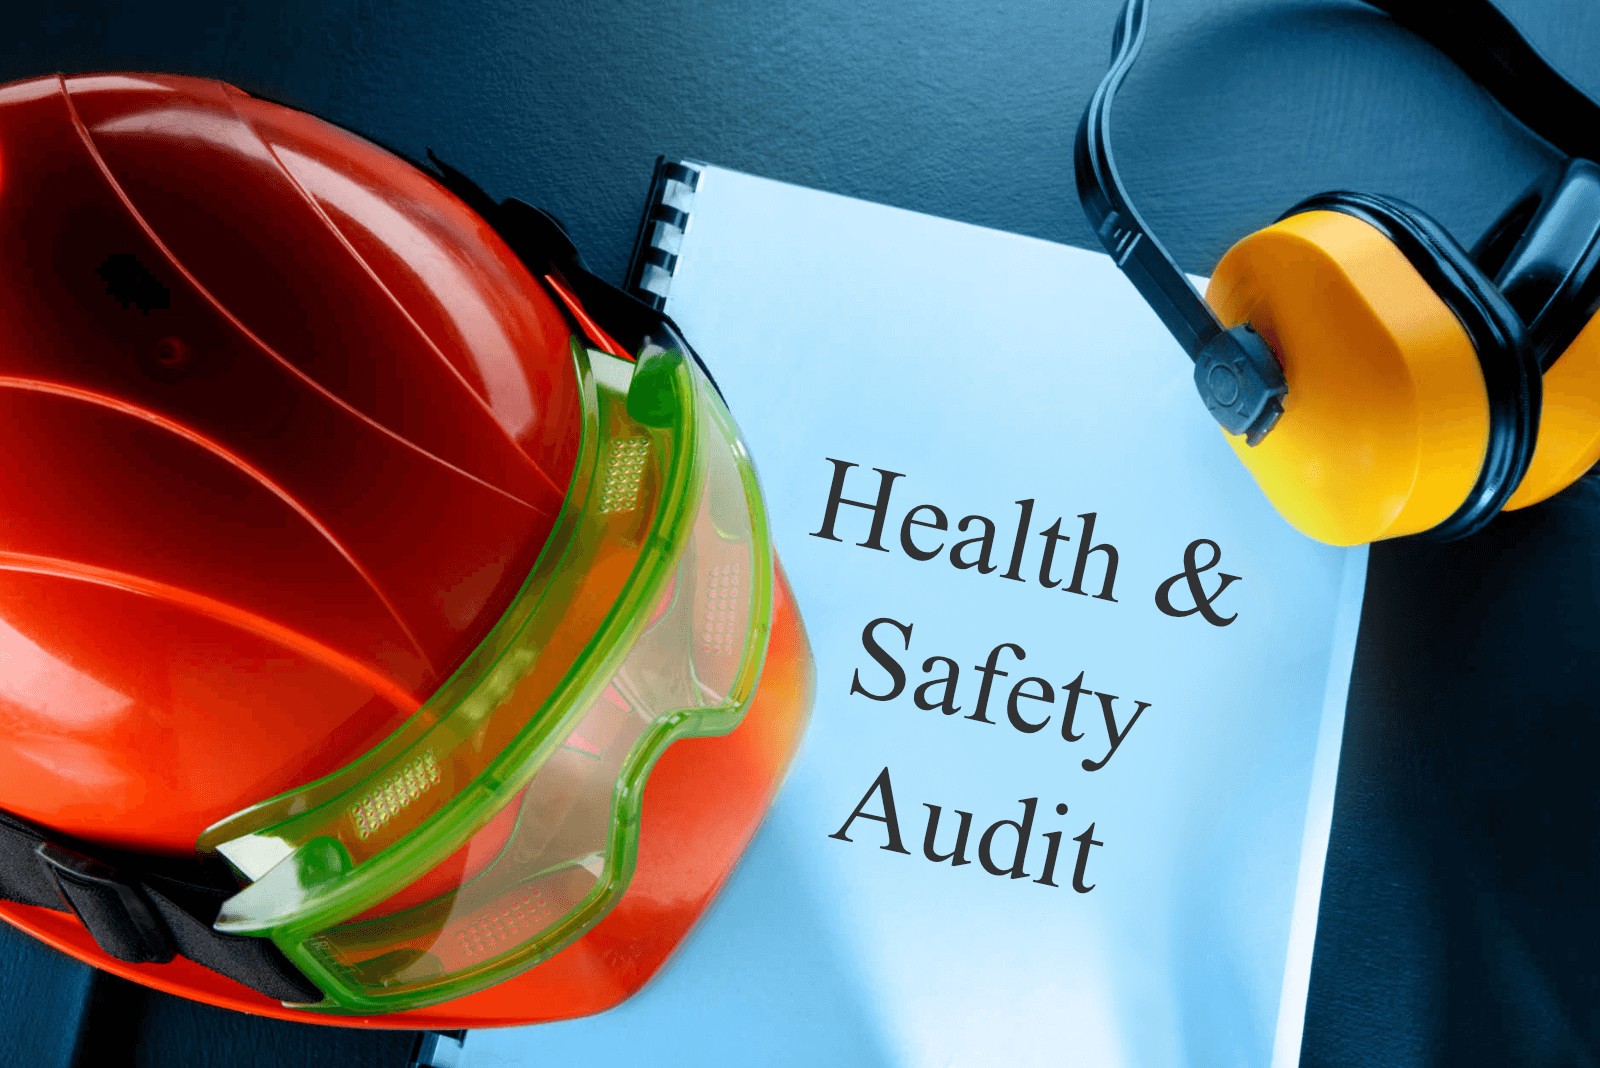 Health and safety audit - Kiri Align